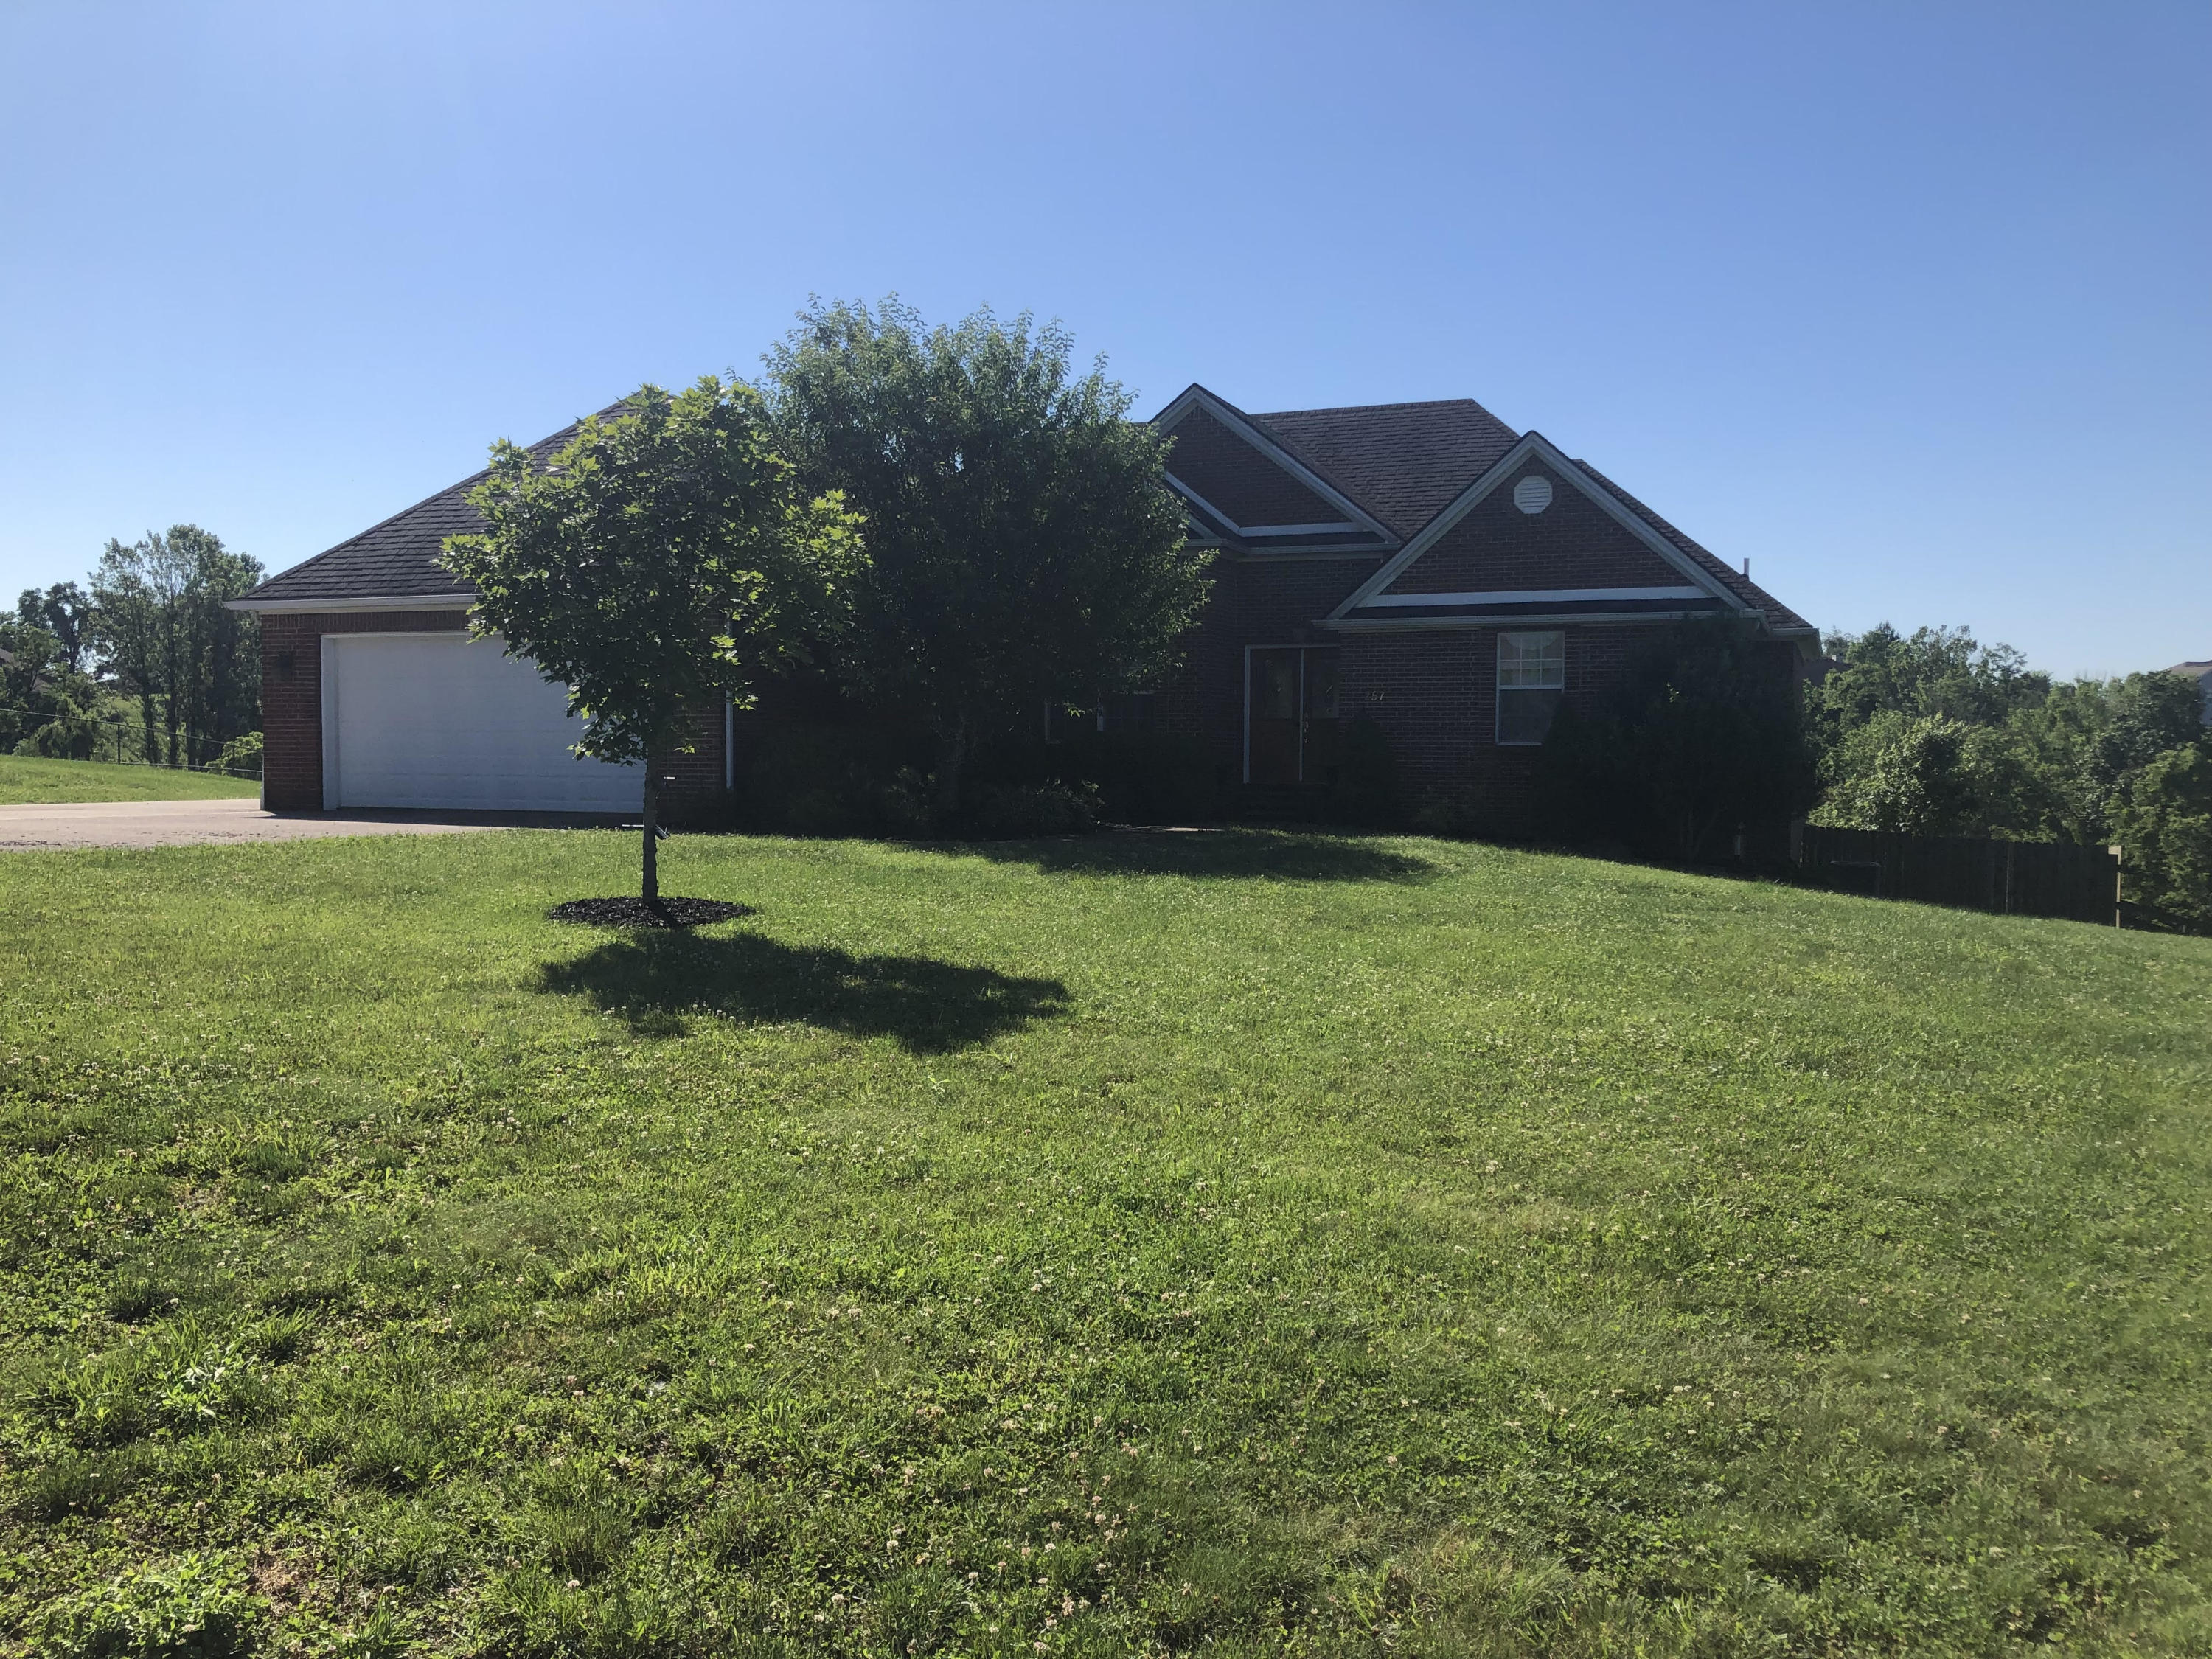 257 View Point Drive, Richmond, Kentucky 40475, 4 Bedrooms Bedrooms, ,3 BathroomsBathrooms,Residential,For Sale,View Point,20111344